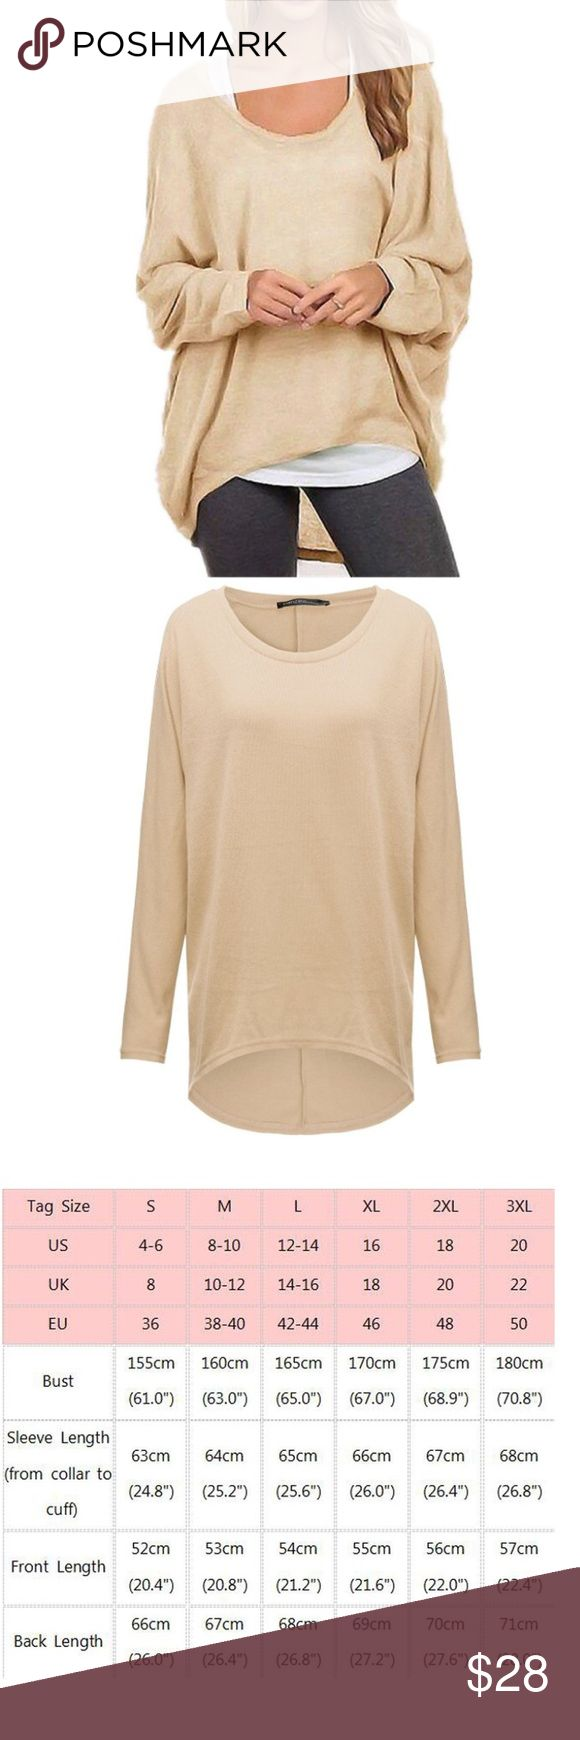 Hi lo semi sheer loose fit Tunic top in Tan Brand new in package. Material cotton & polyester. Semi sheer Tunic Top. This in NWOT retail. Tj boutique Tops Tunics